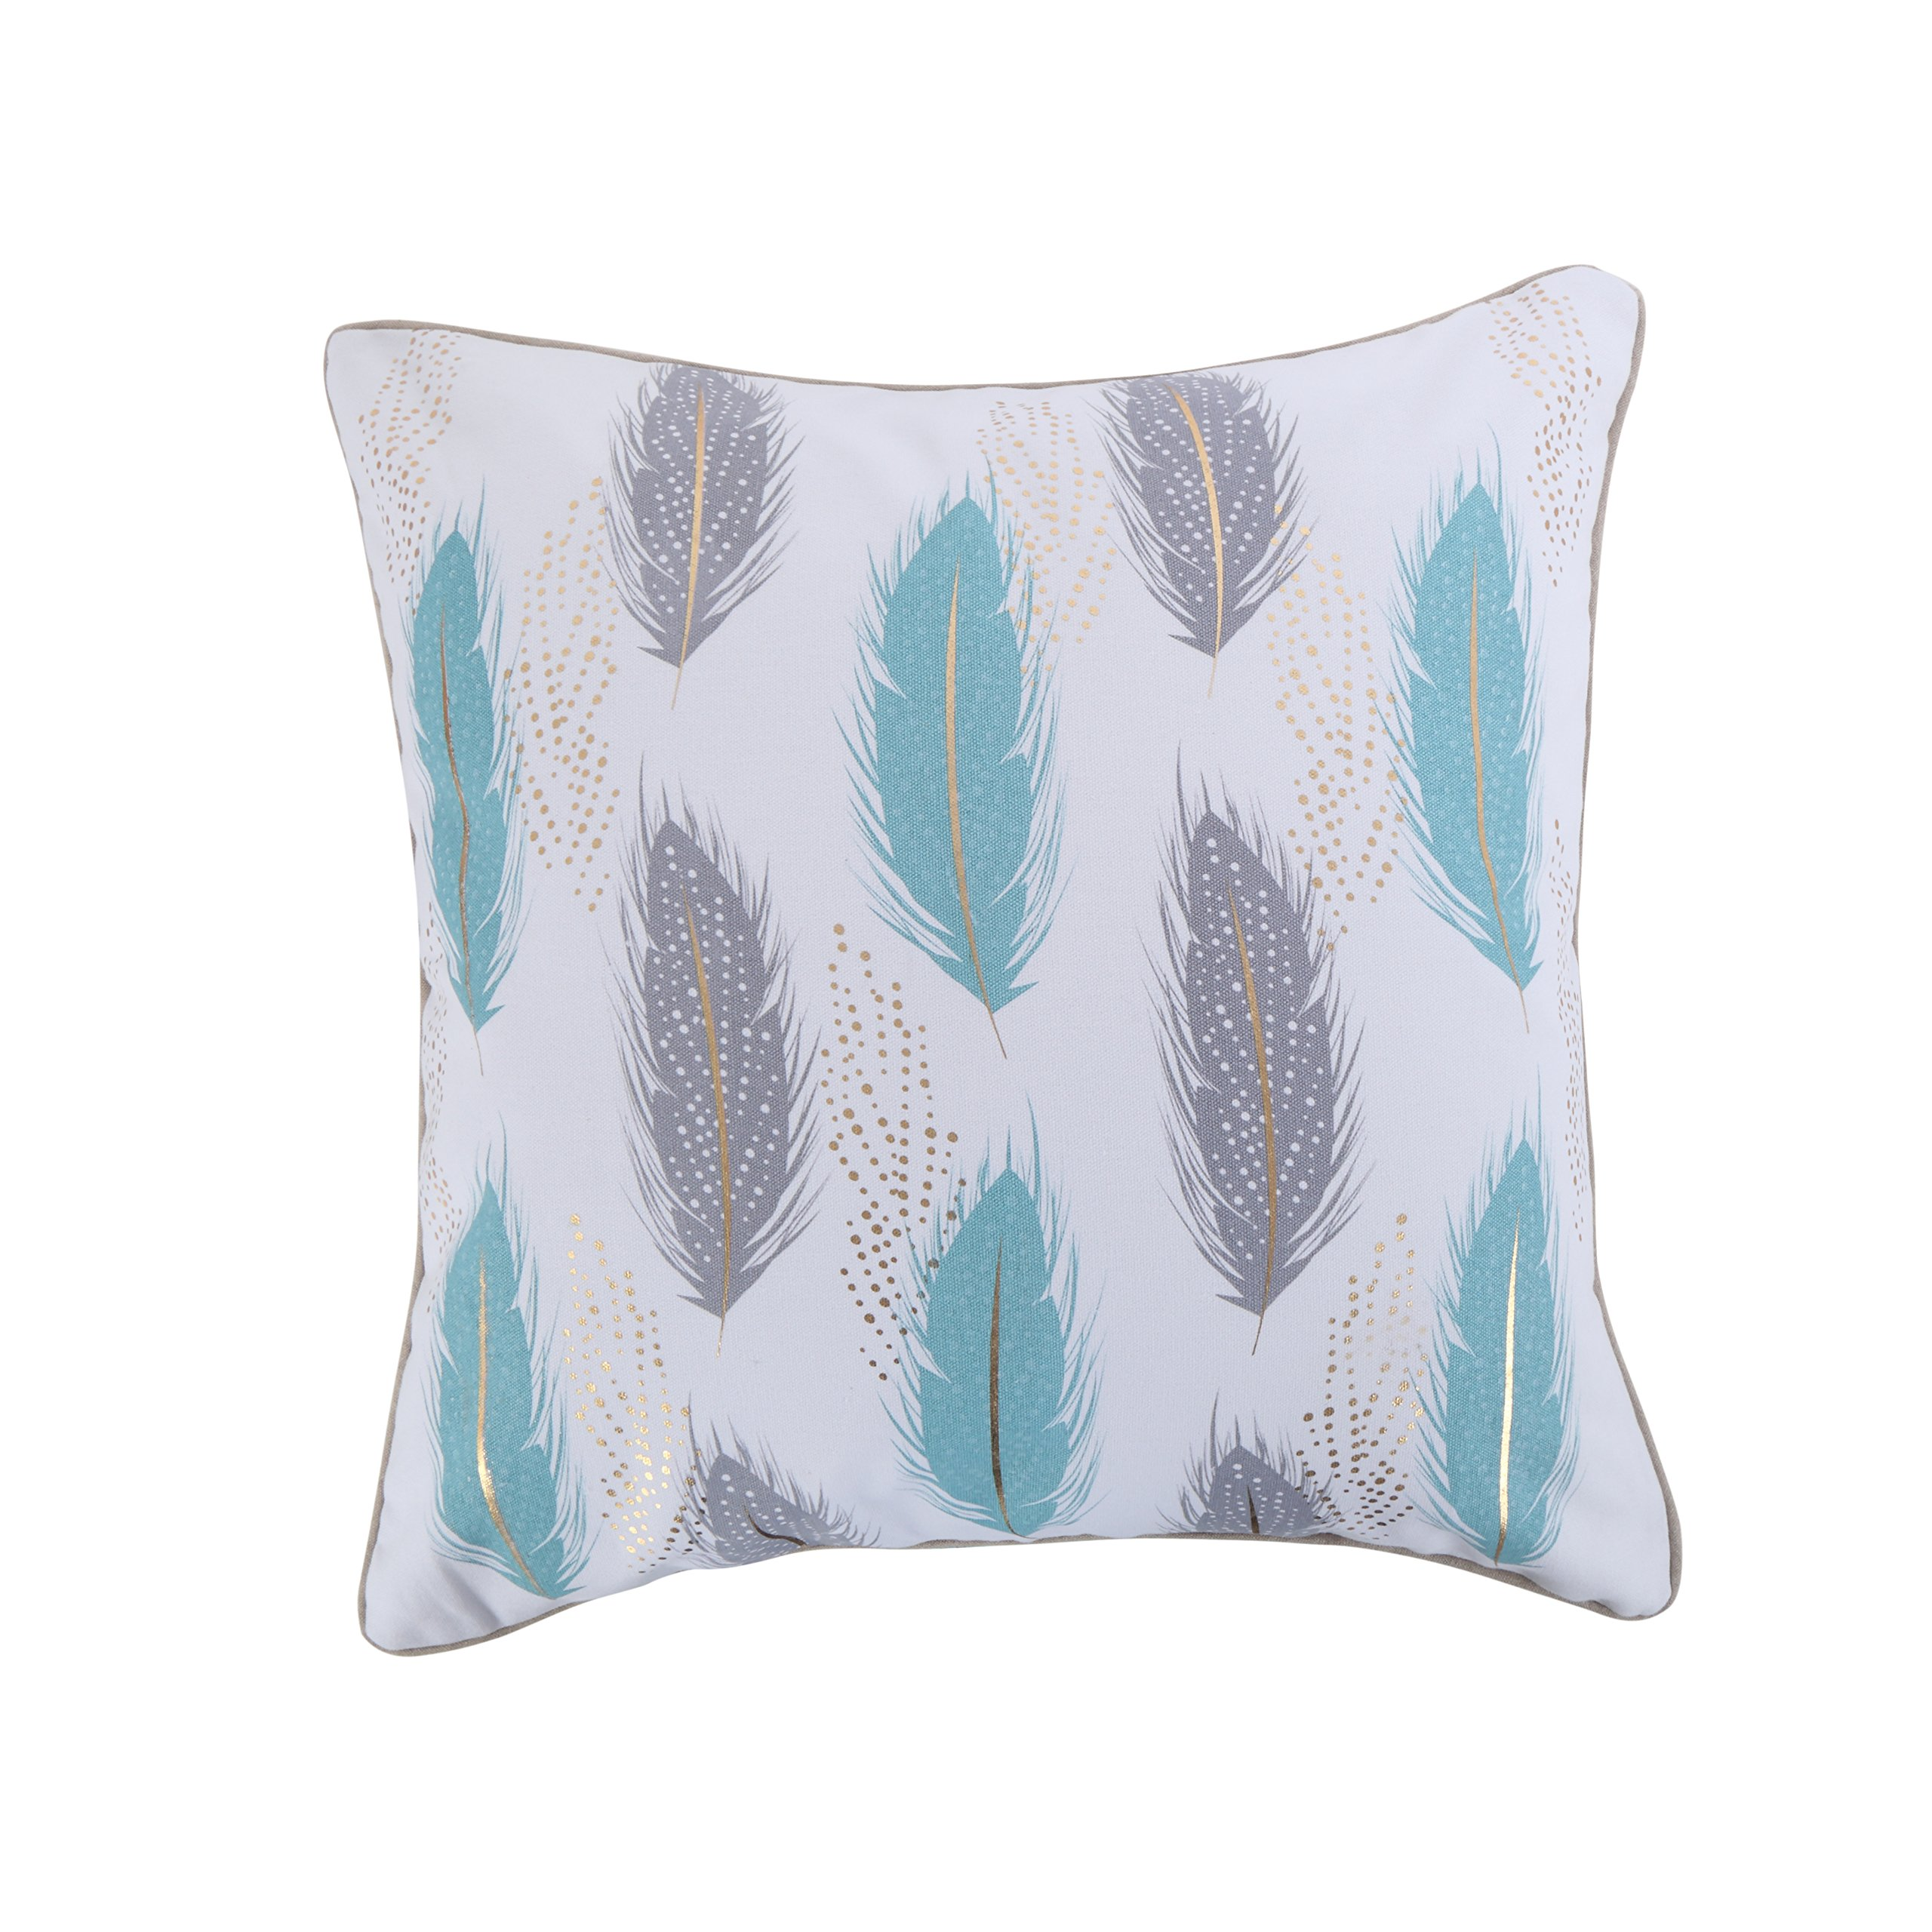 Levtex Spa Pintuck Teal Gray Feathers Pillow